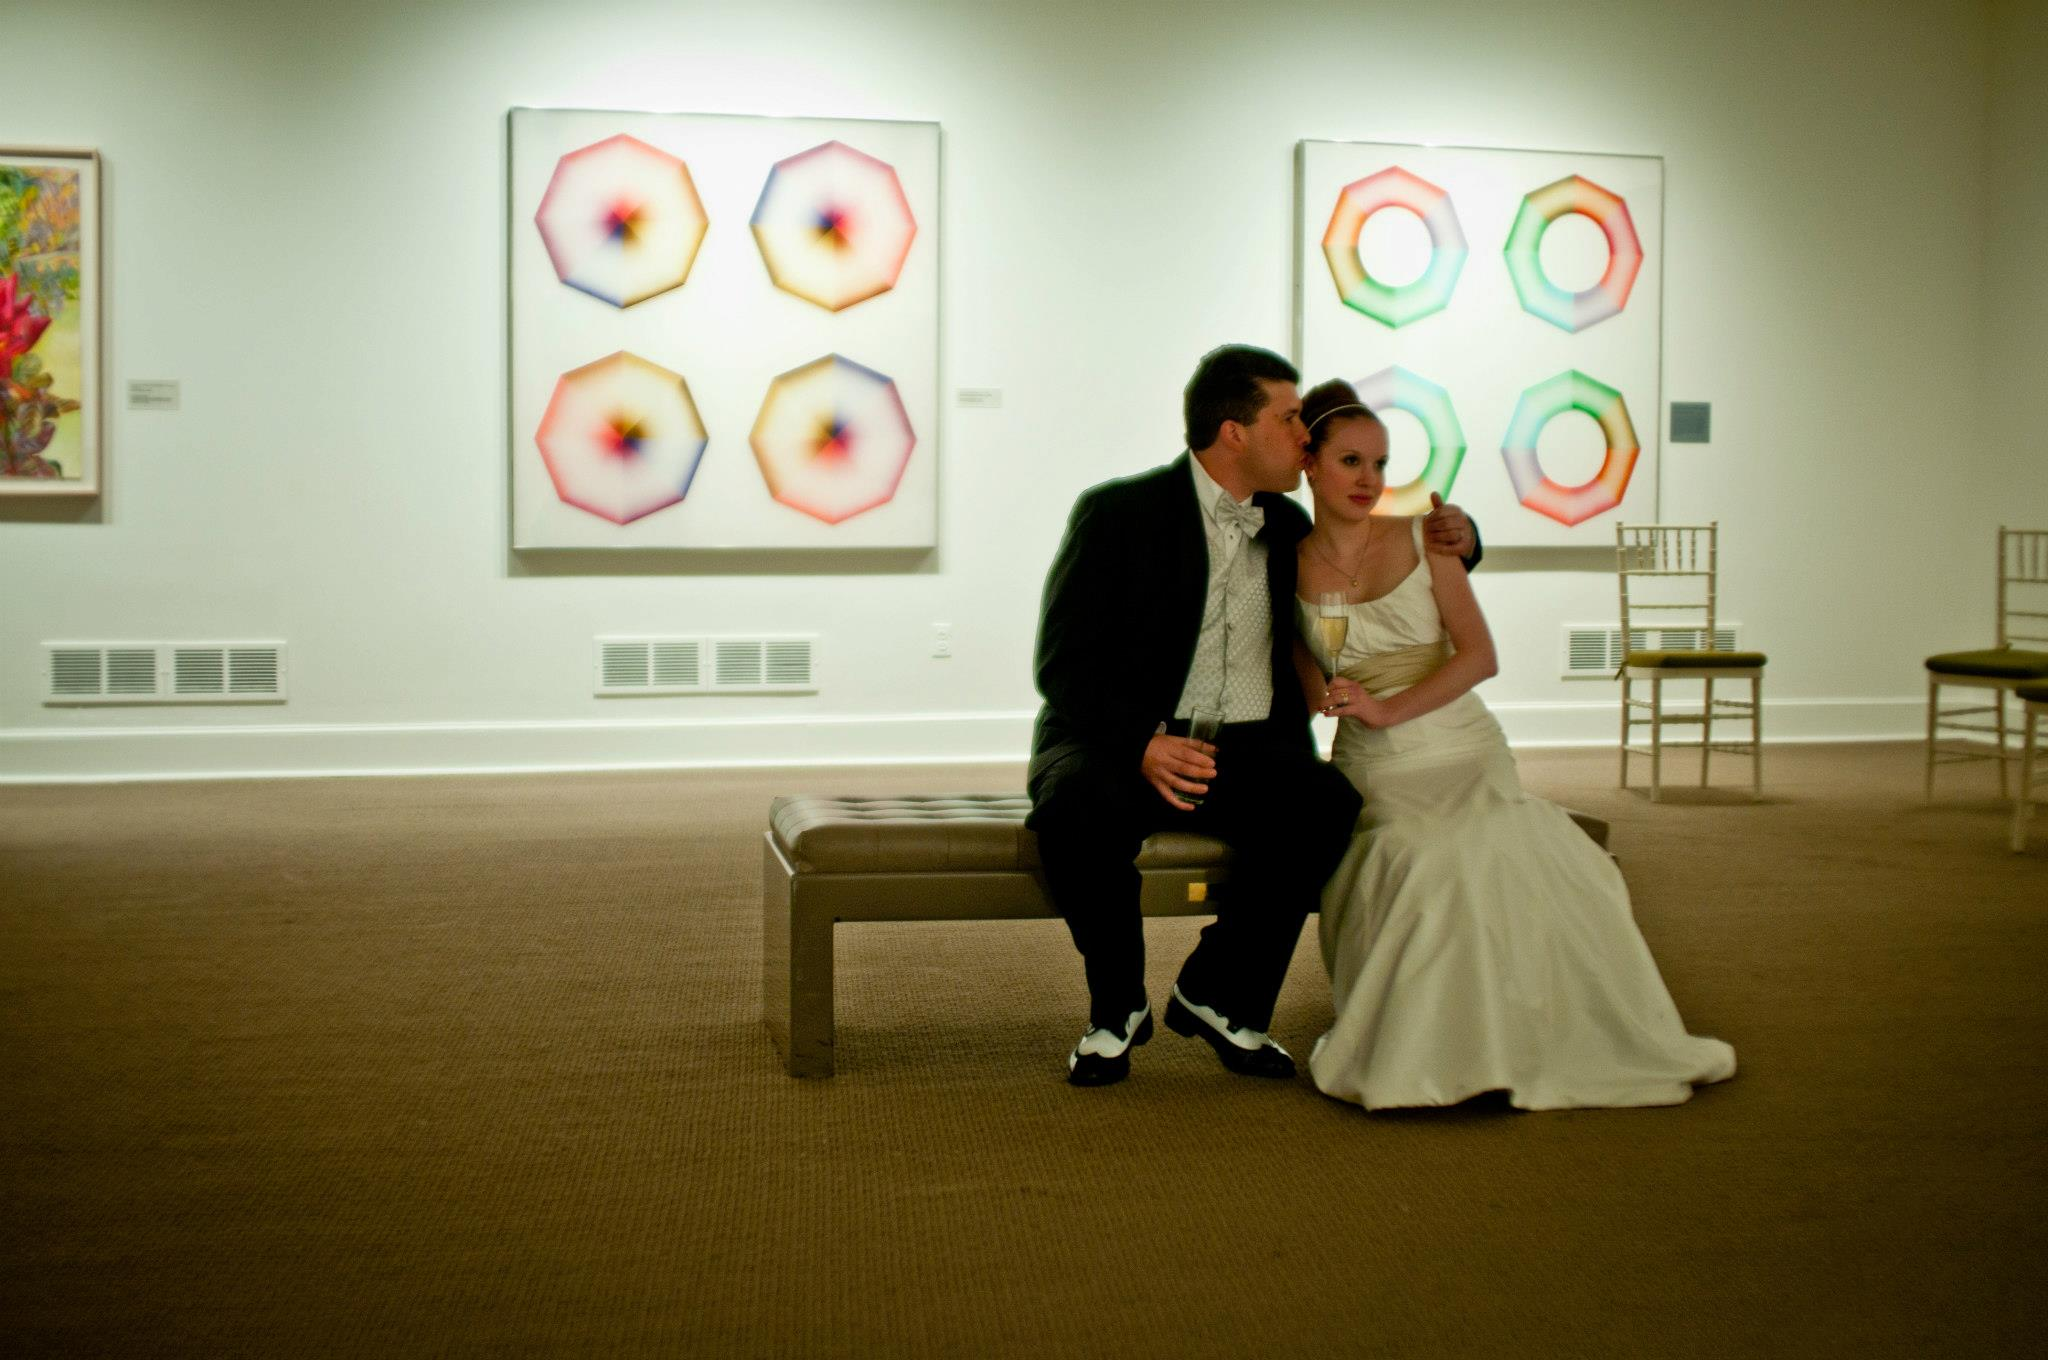 Alana & Nick - Washington, DCVenue: National Museum of Women In The ArtsPhotographer: Elope DC Photo